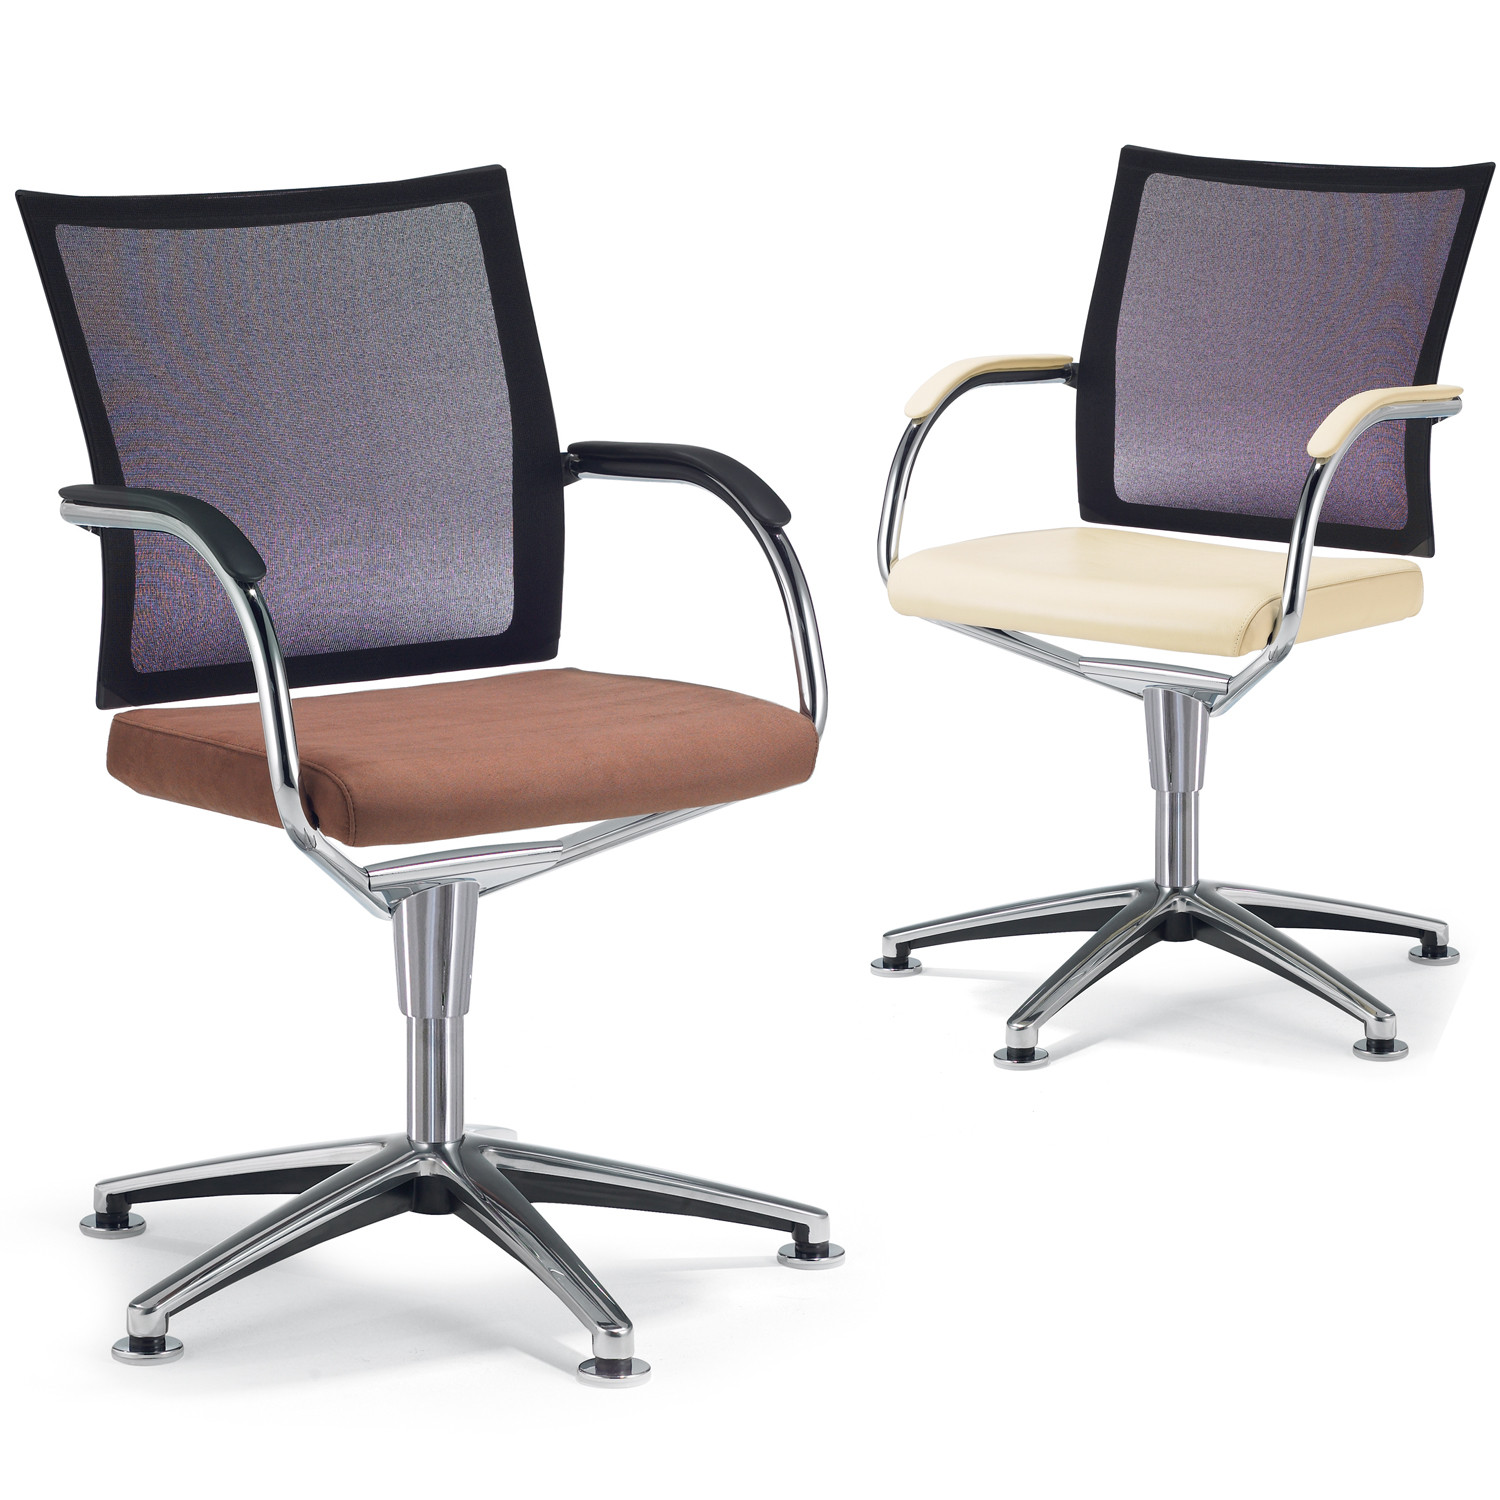 Orbit Conference Chairs by Klober